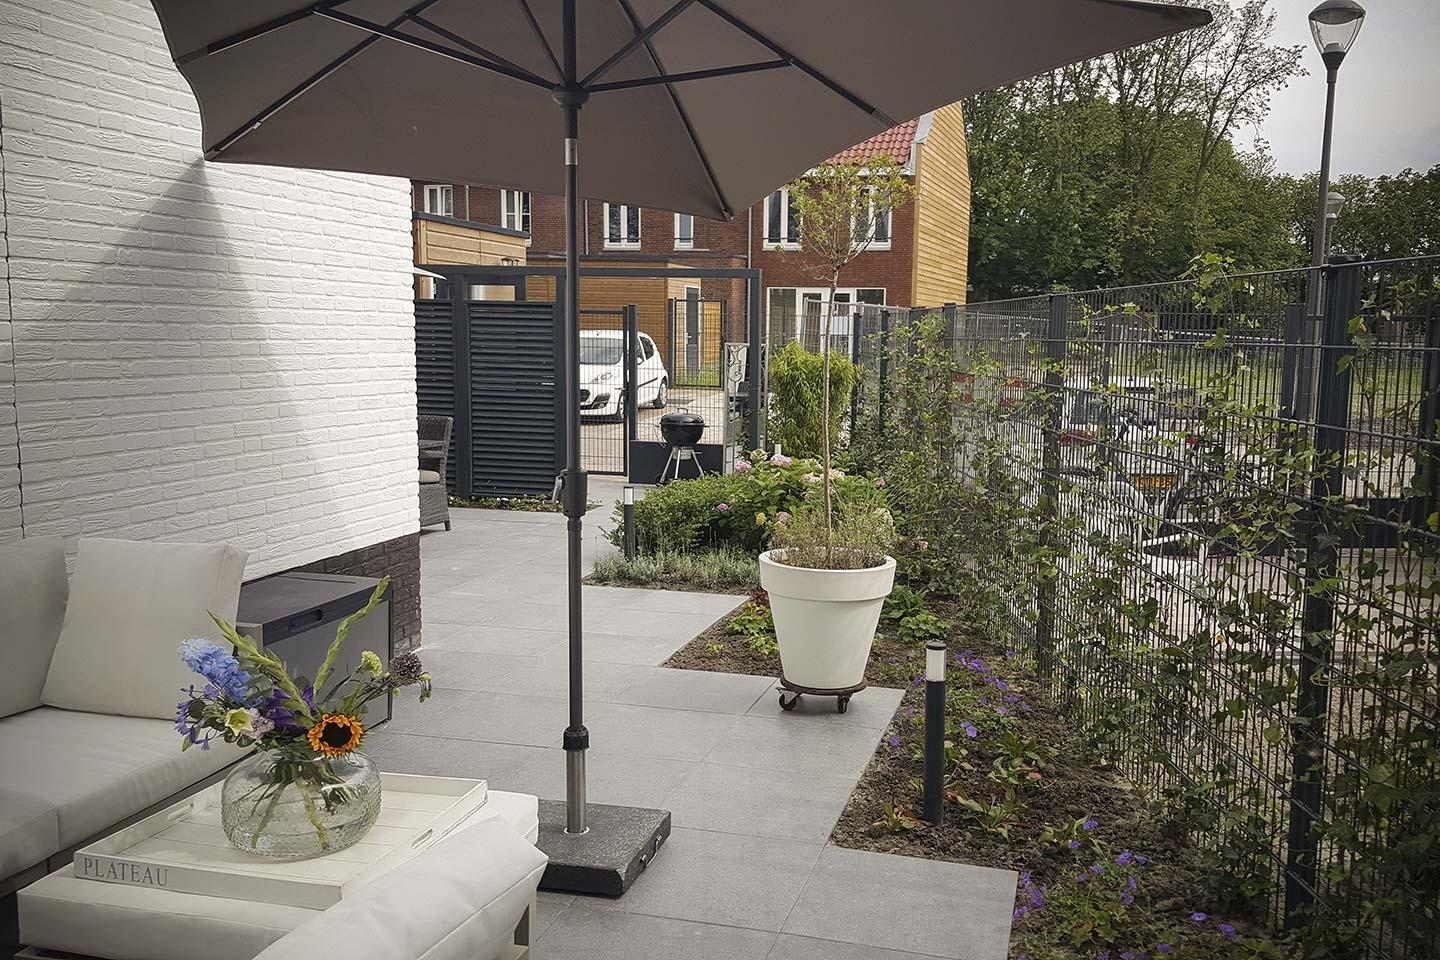 Moderne loungetuin in bergen op zoom dutch quality gardens